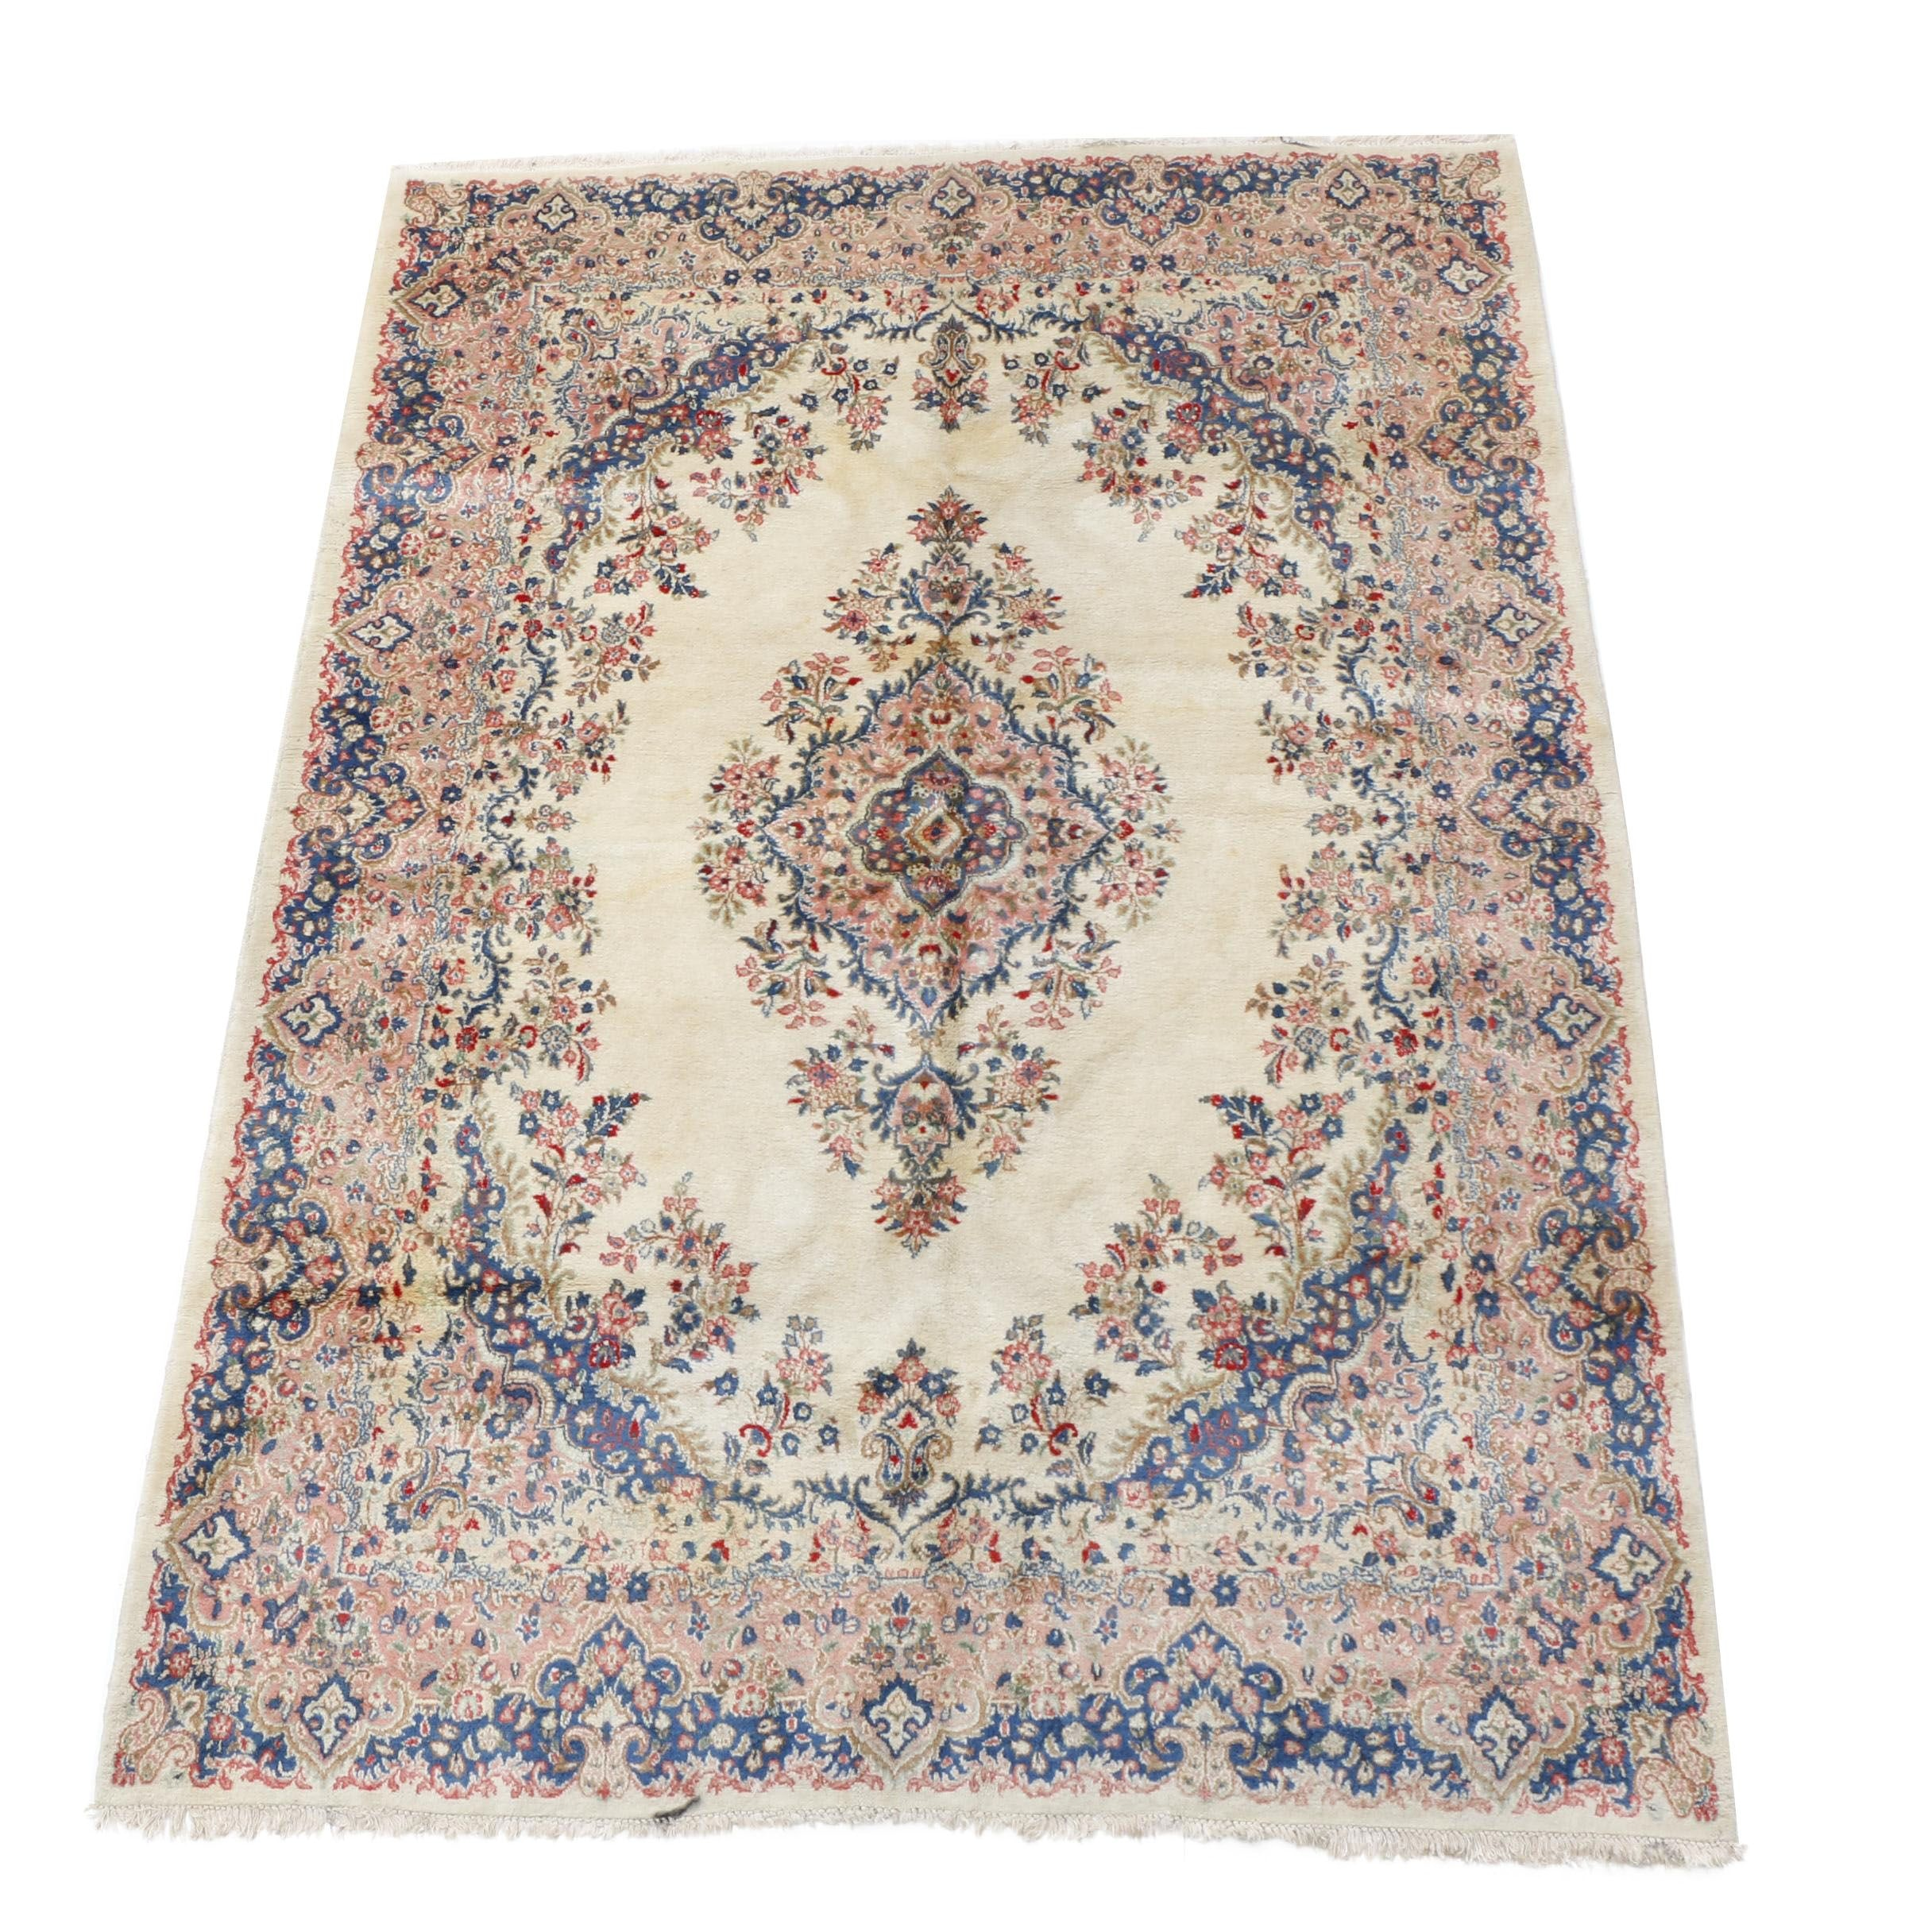 Hand-Knotted Persian Kerman Room-Size Rug